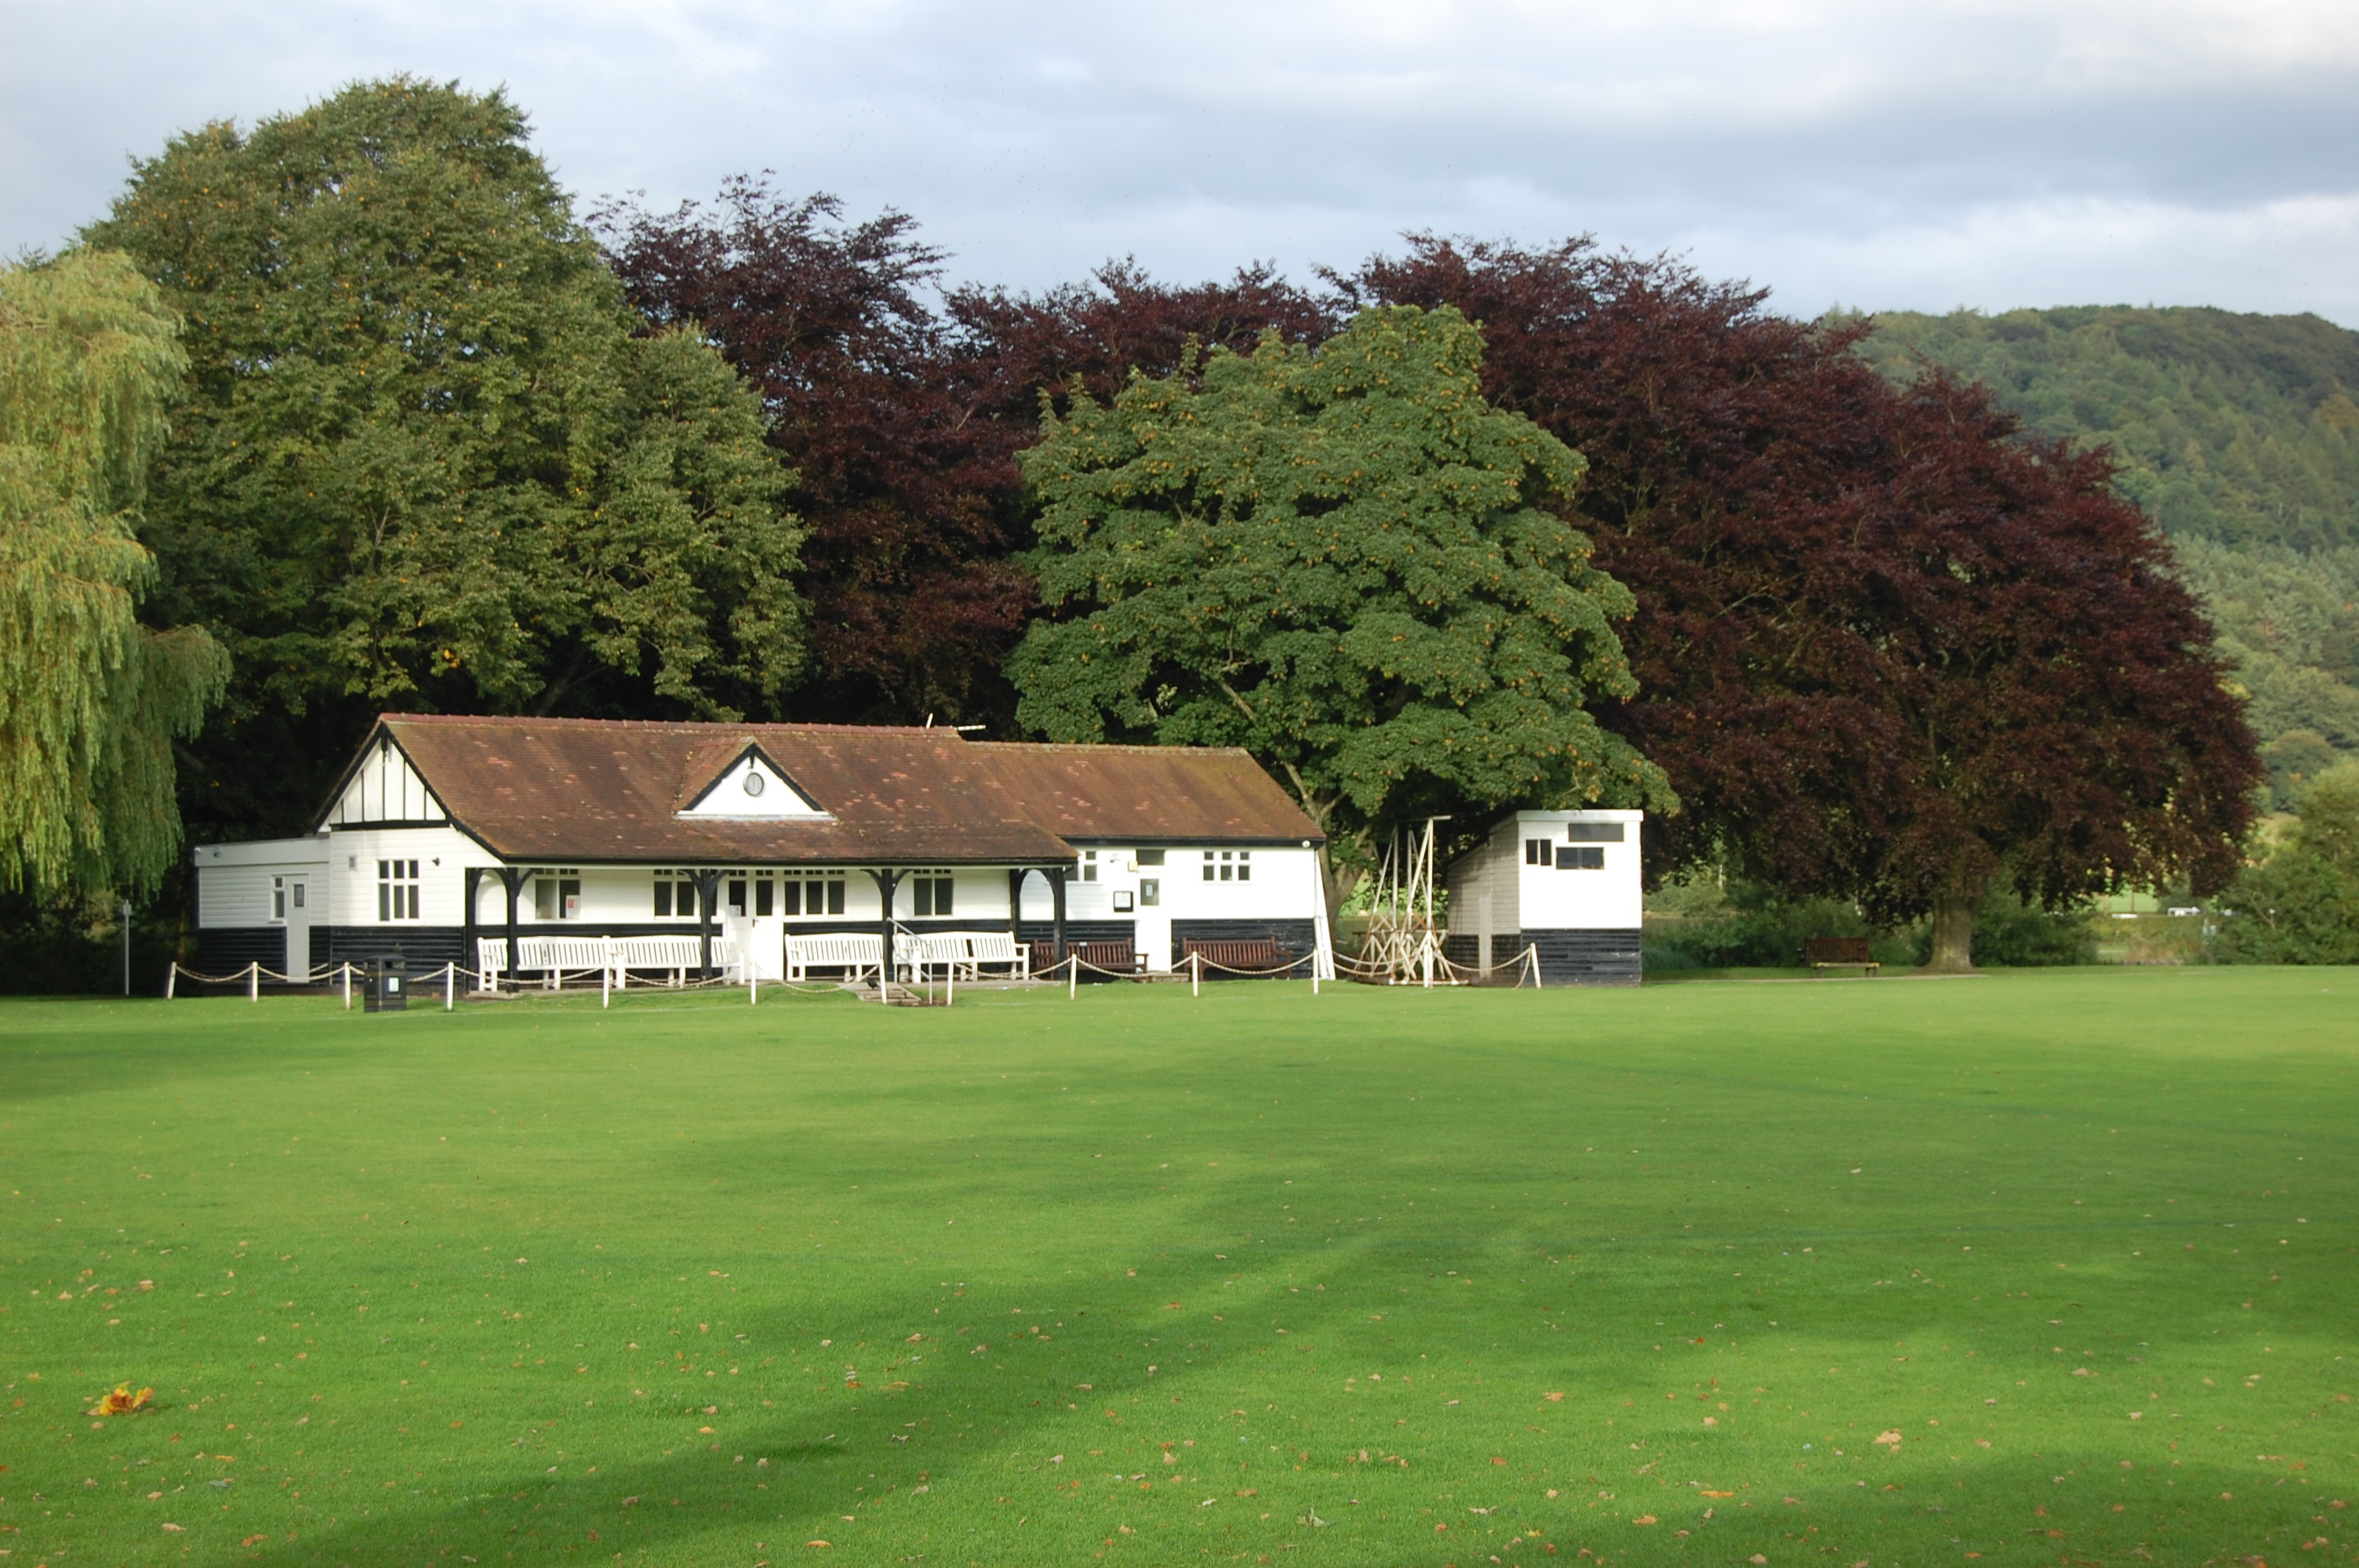 Bakewell Cricket Pavilion